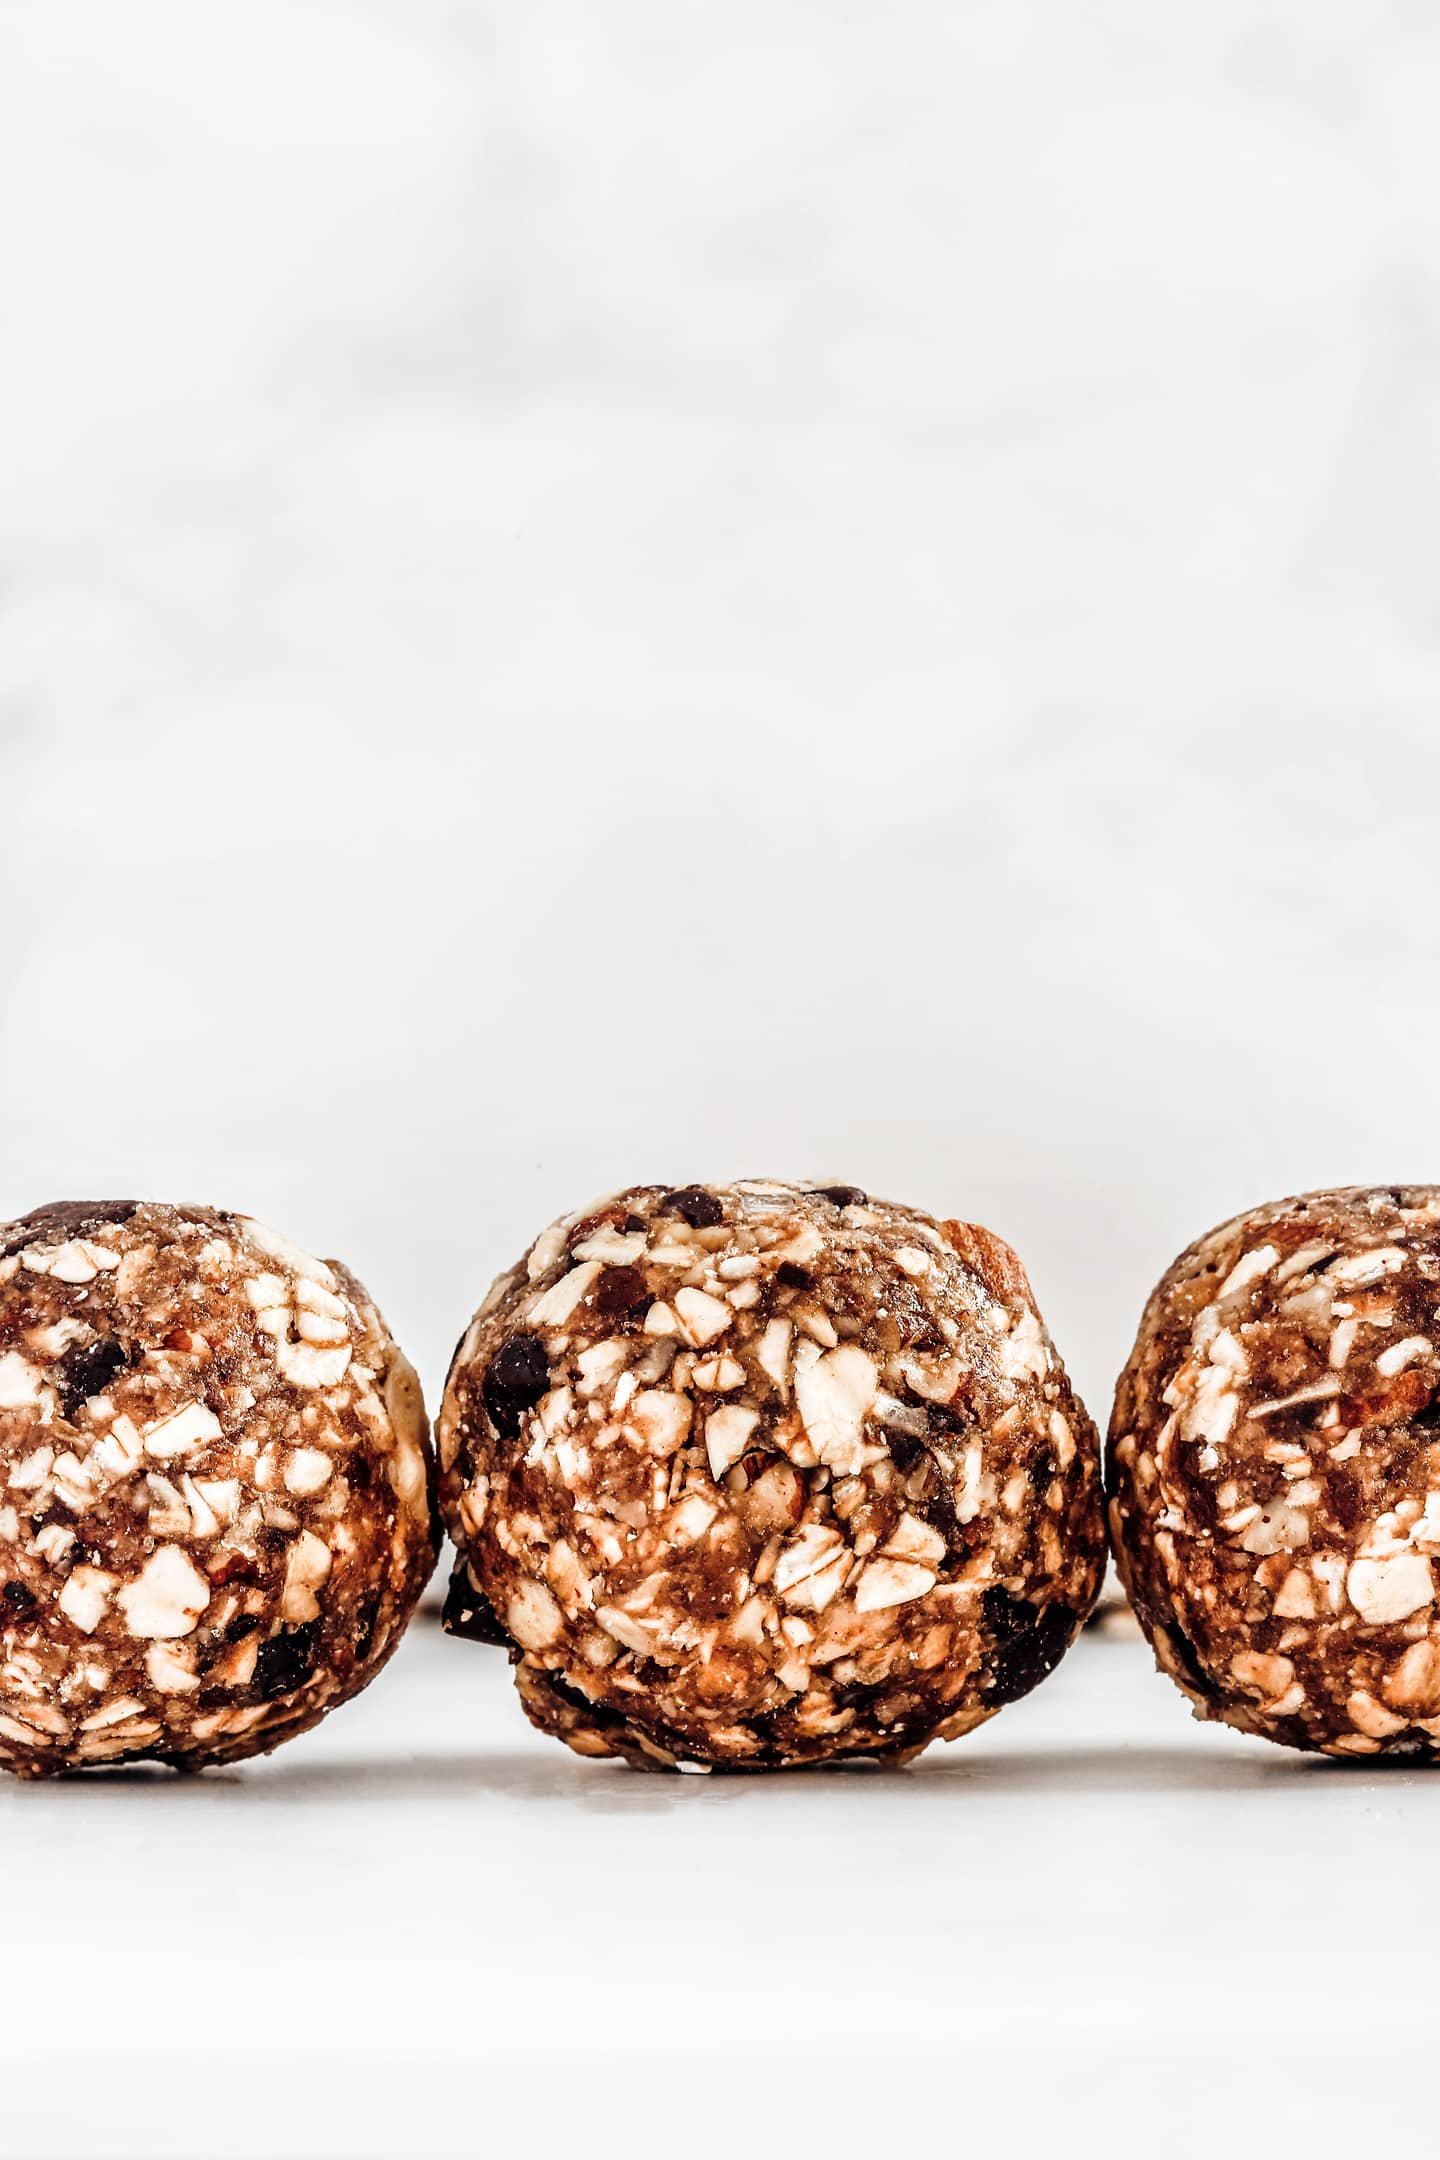 Best energy balls recipe